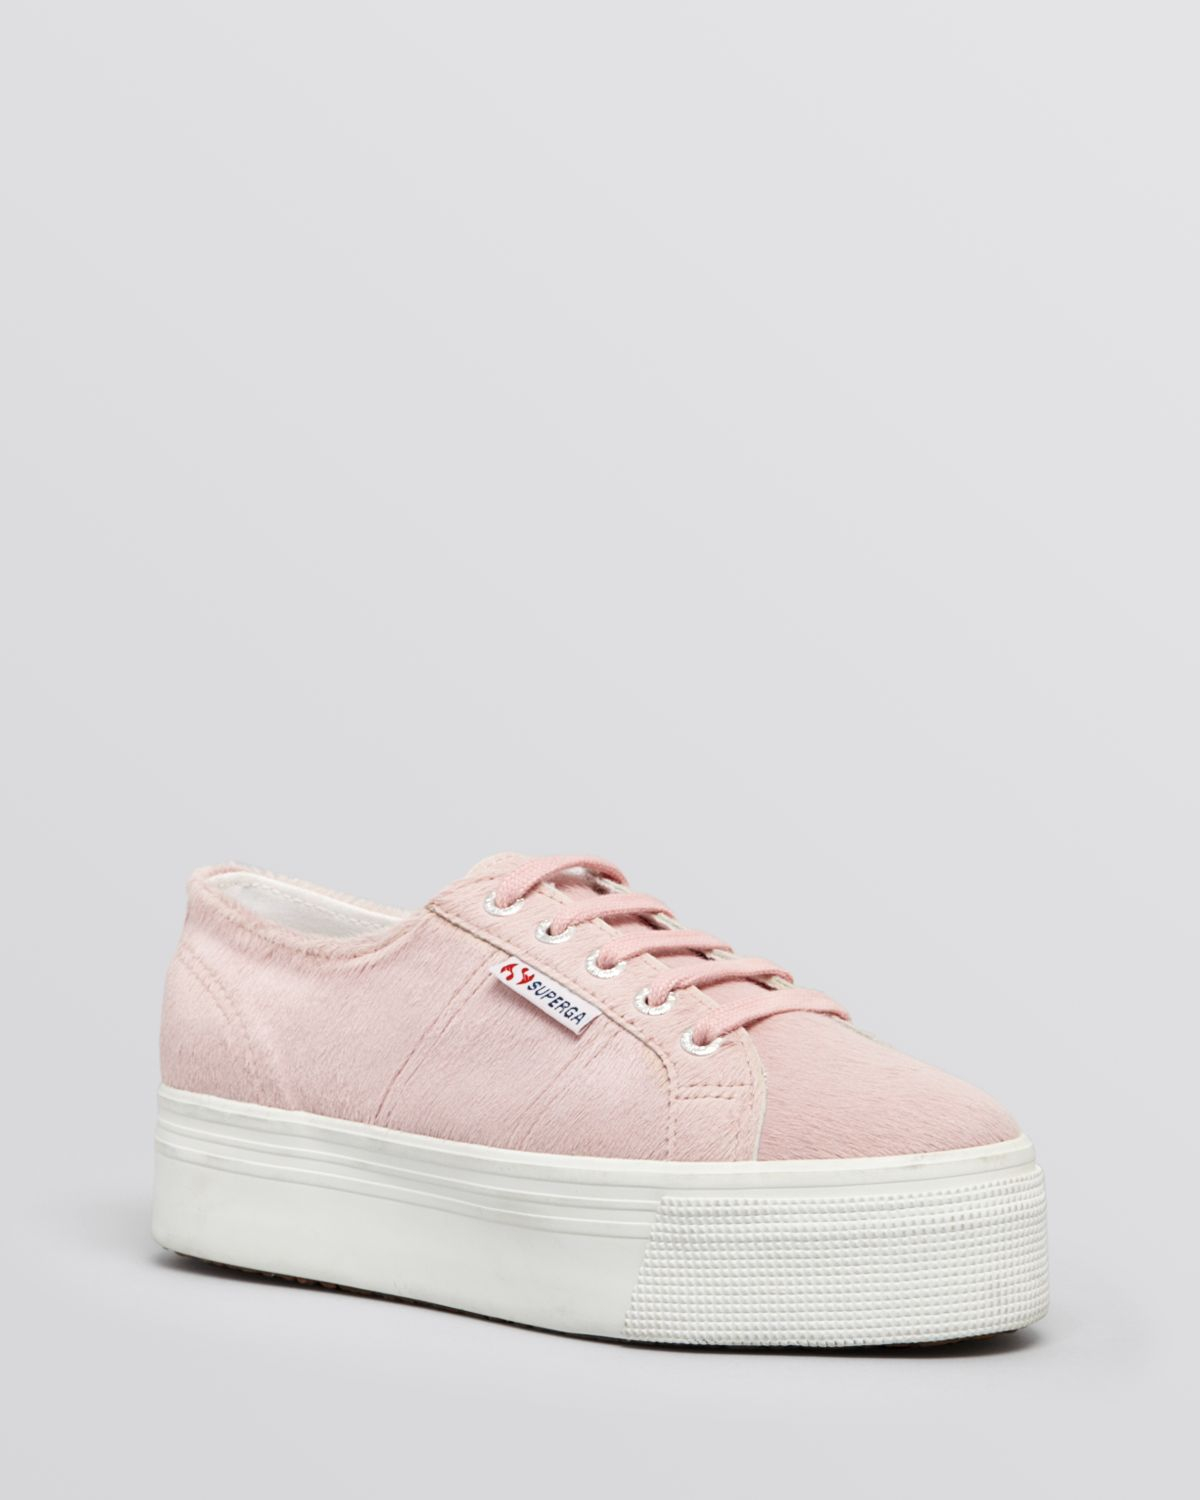 8acbb155da29 Lyst - Superga Lace Up Sneakers Double Platform Haircalf in Pink